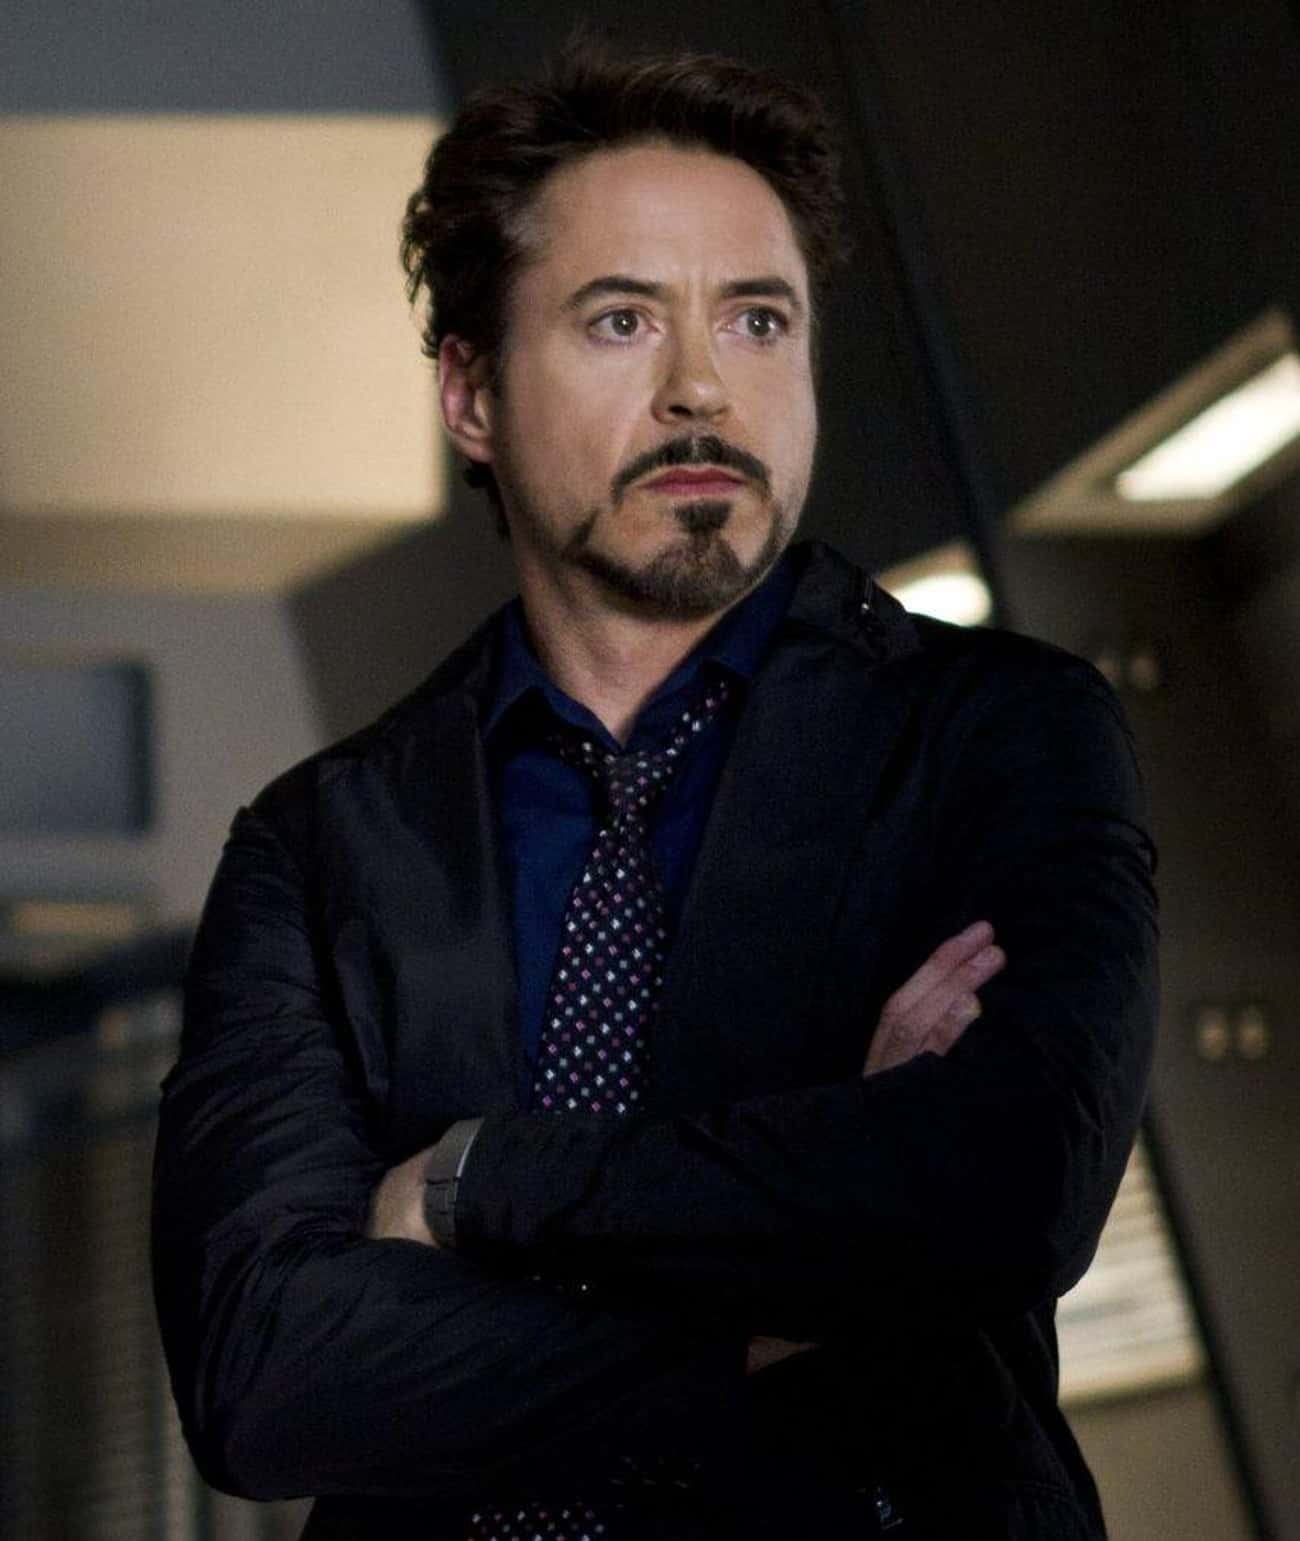 Genius, Billionaire, Playboy P is listed (or ranked) 3 on the list The Best Tony Stark Quotes